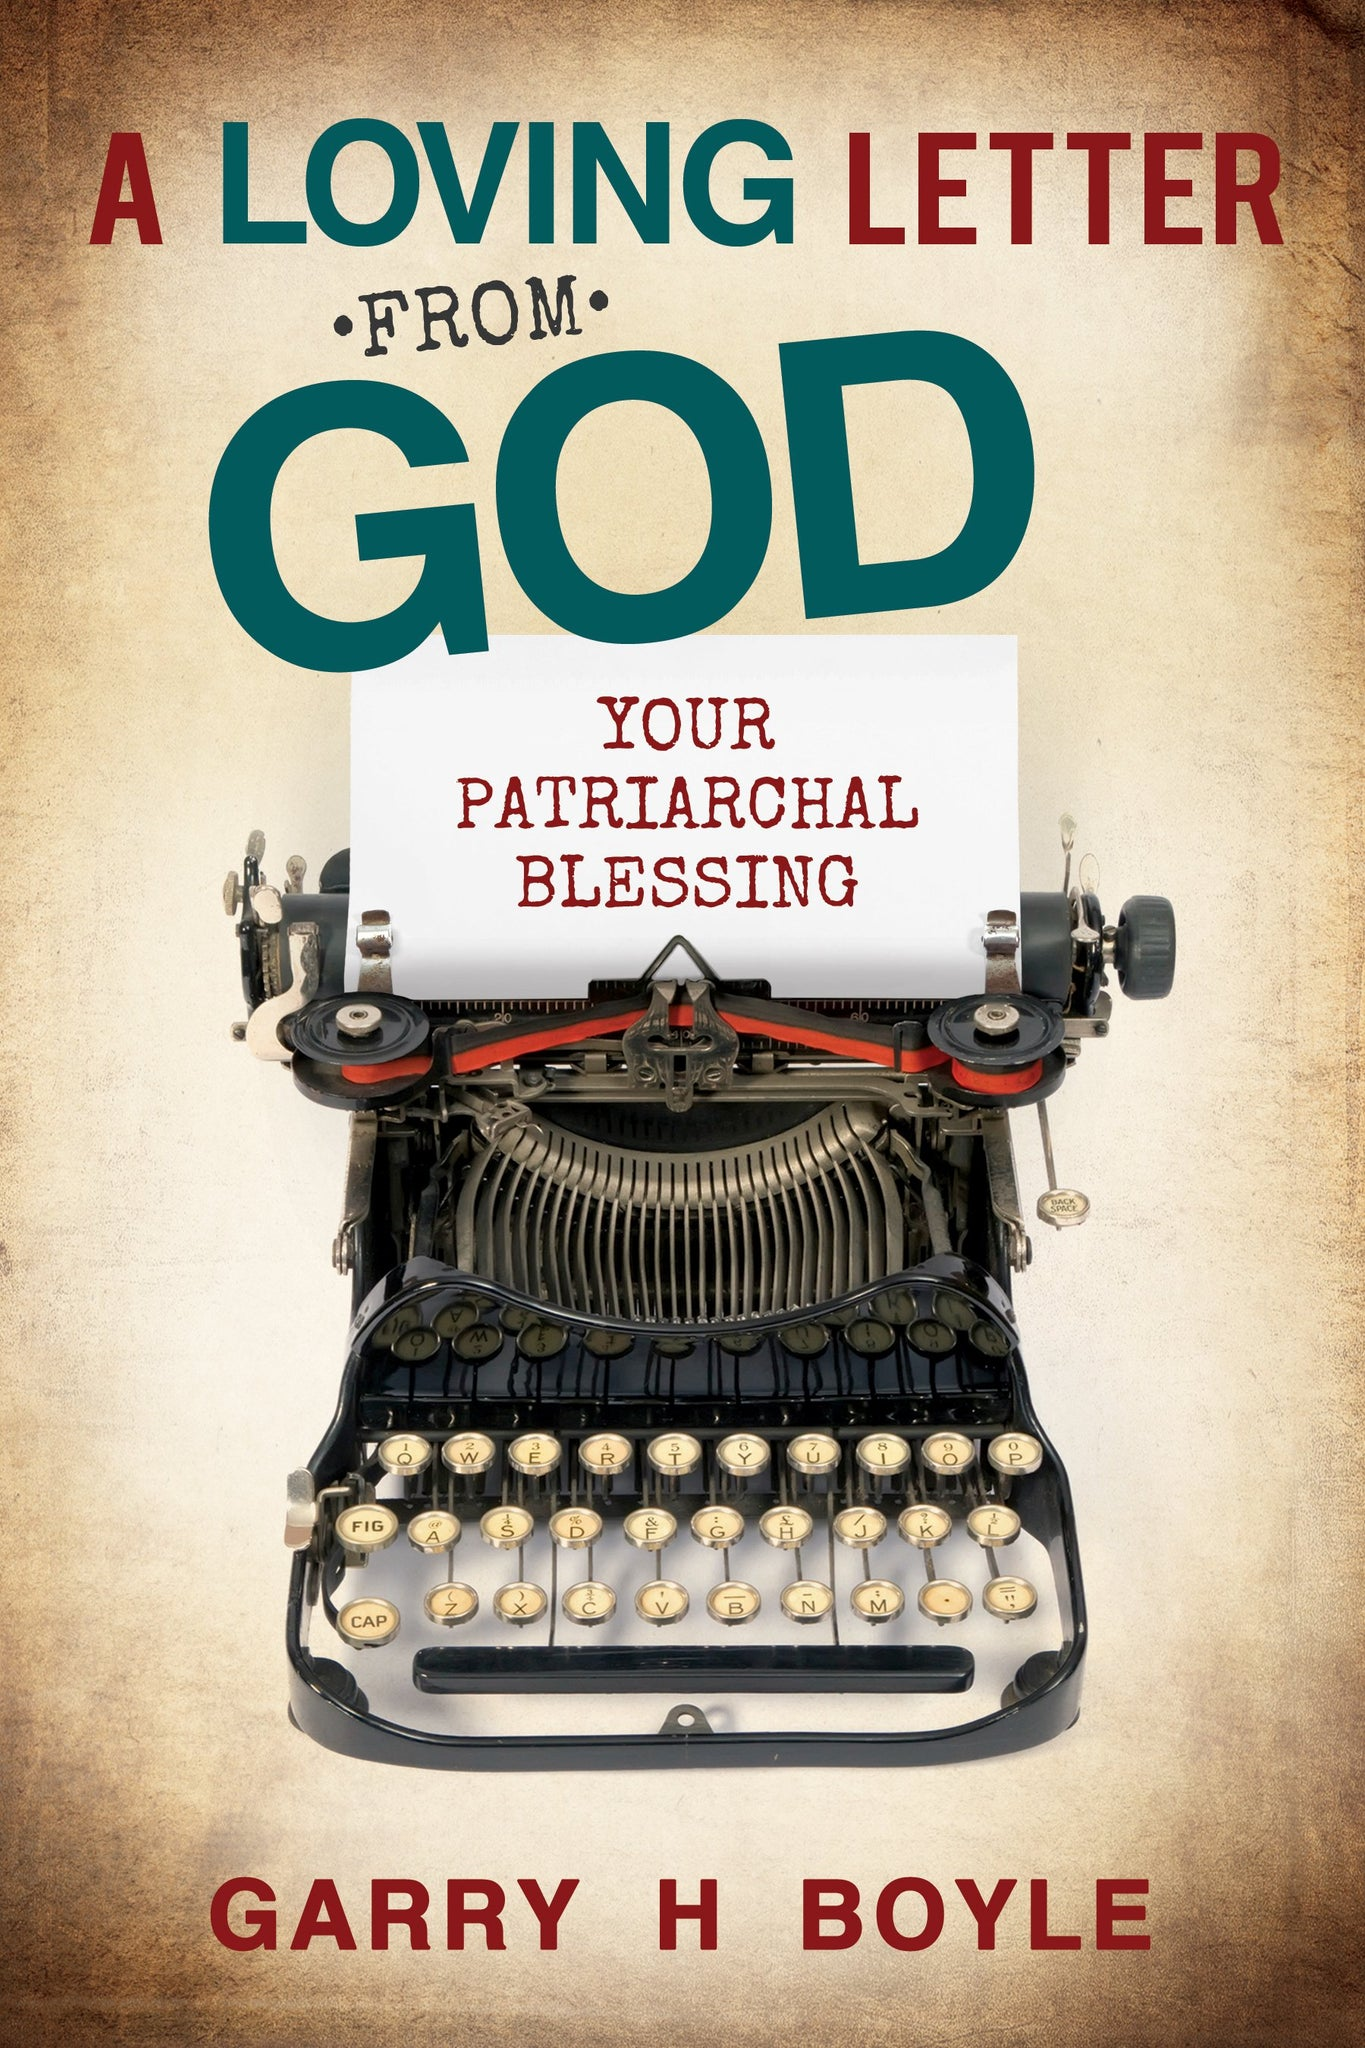 A Loving Letter from God: Your Patriarchal Blessing - Paperback